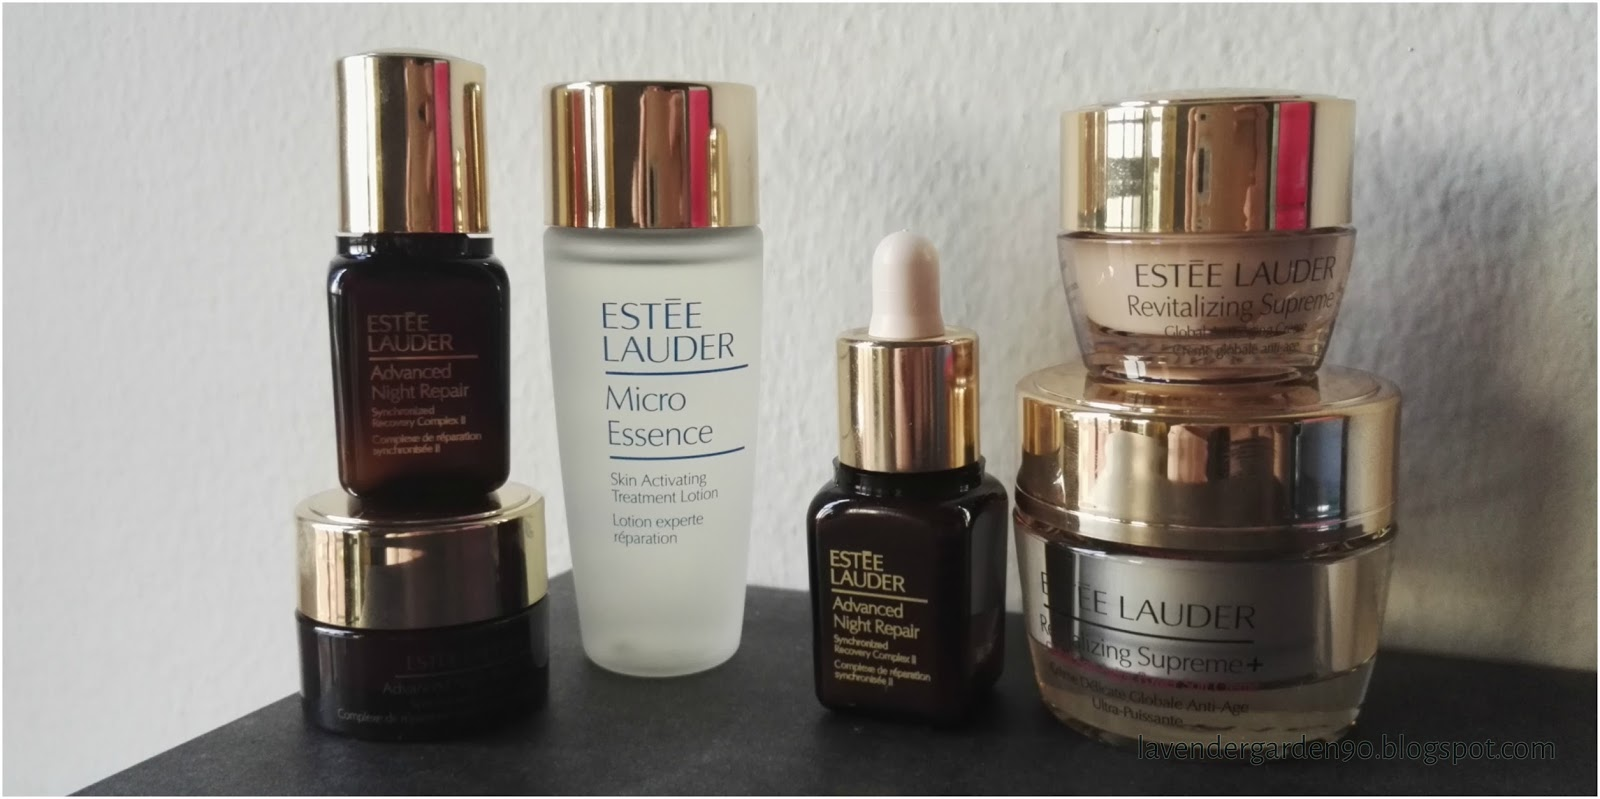 Advanced Night Repair Eye Synchronized Recovery Complex II by Estée Lauder #17